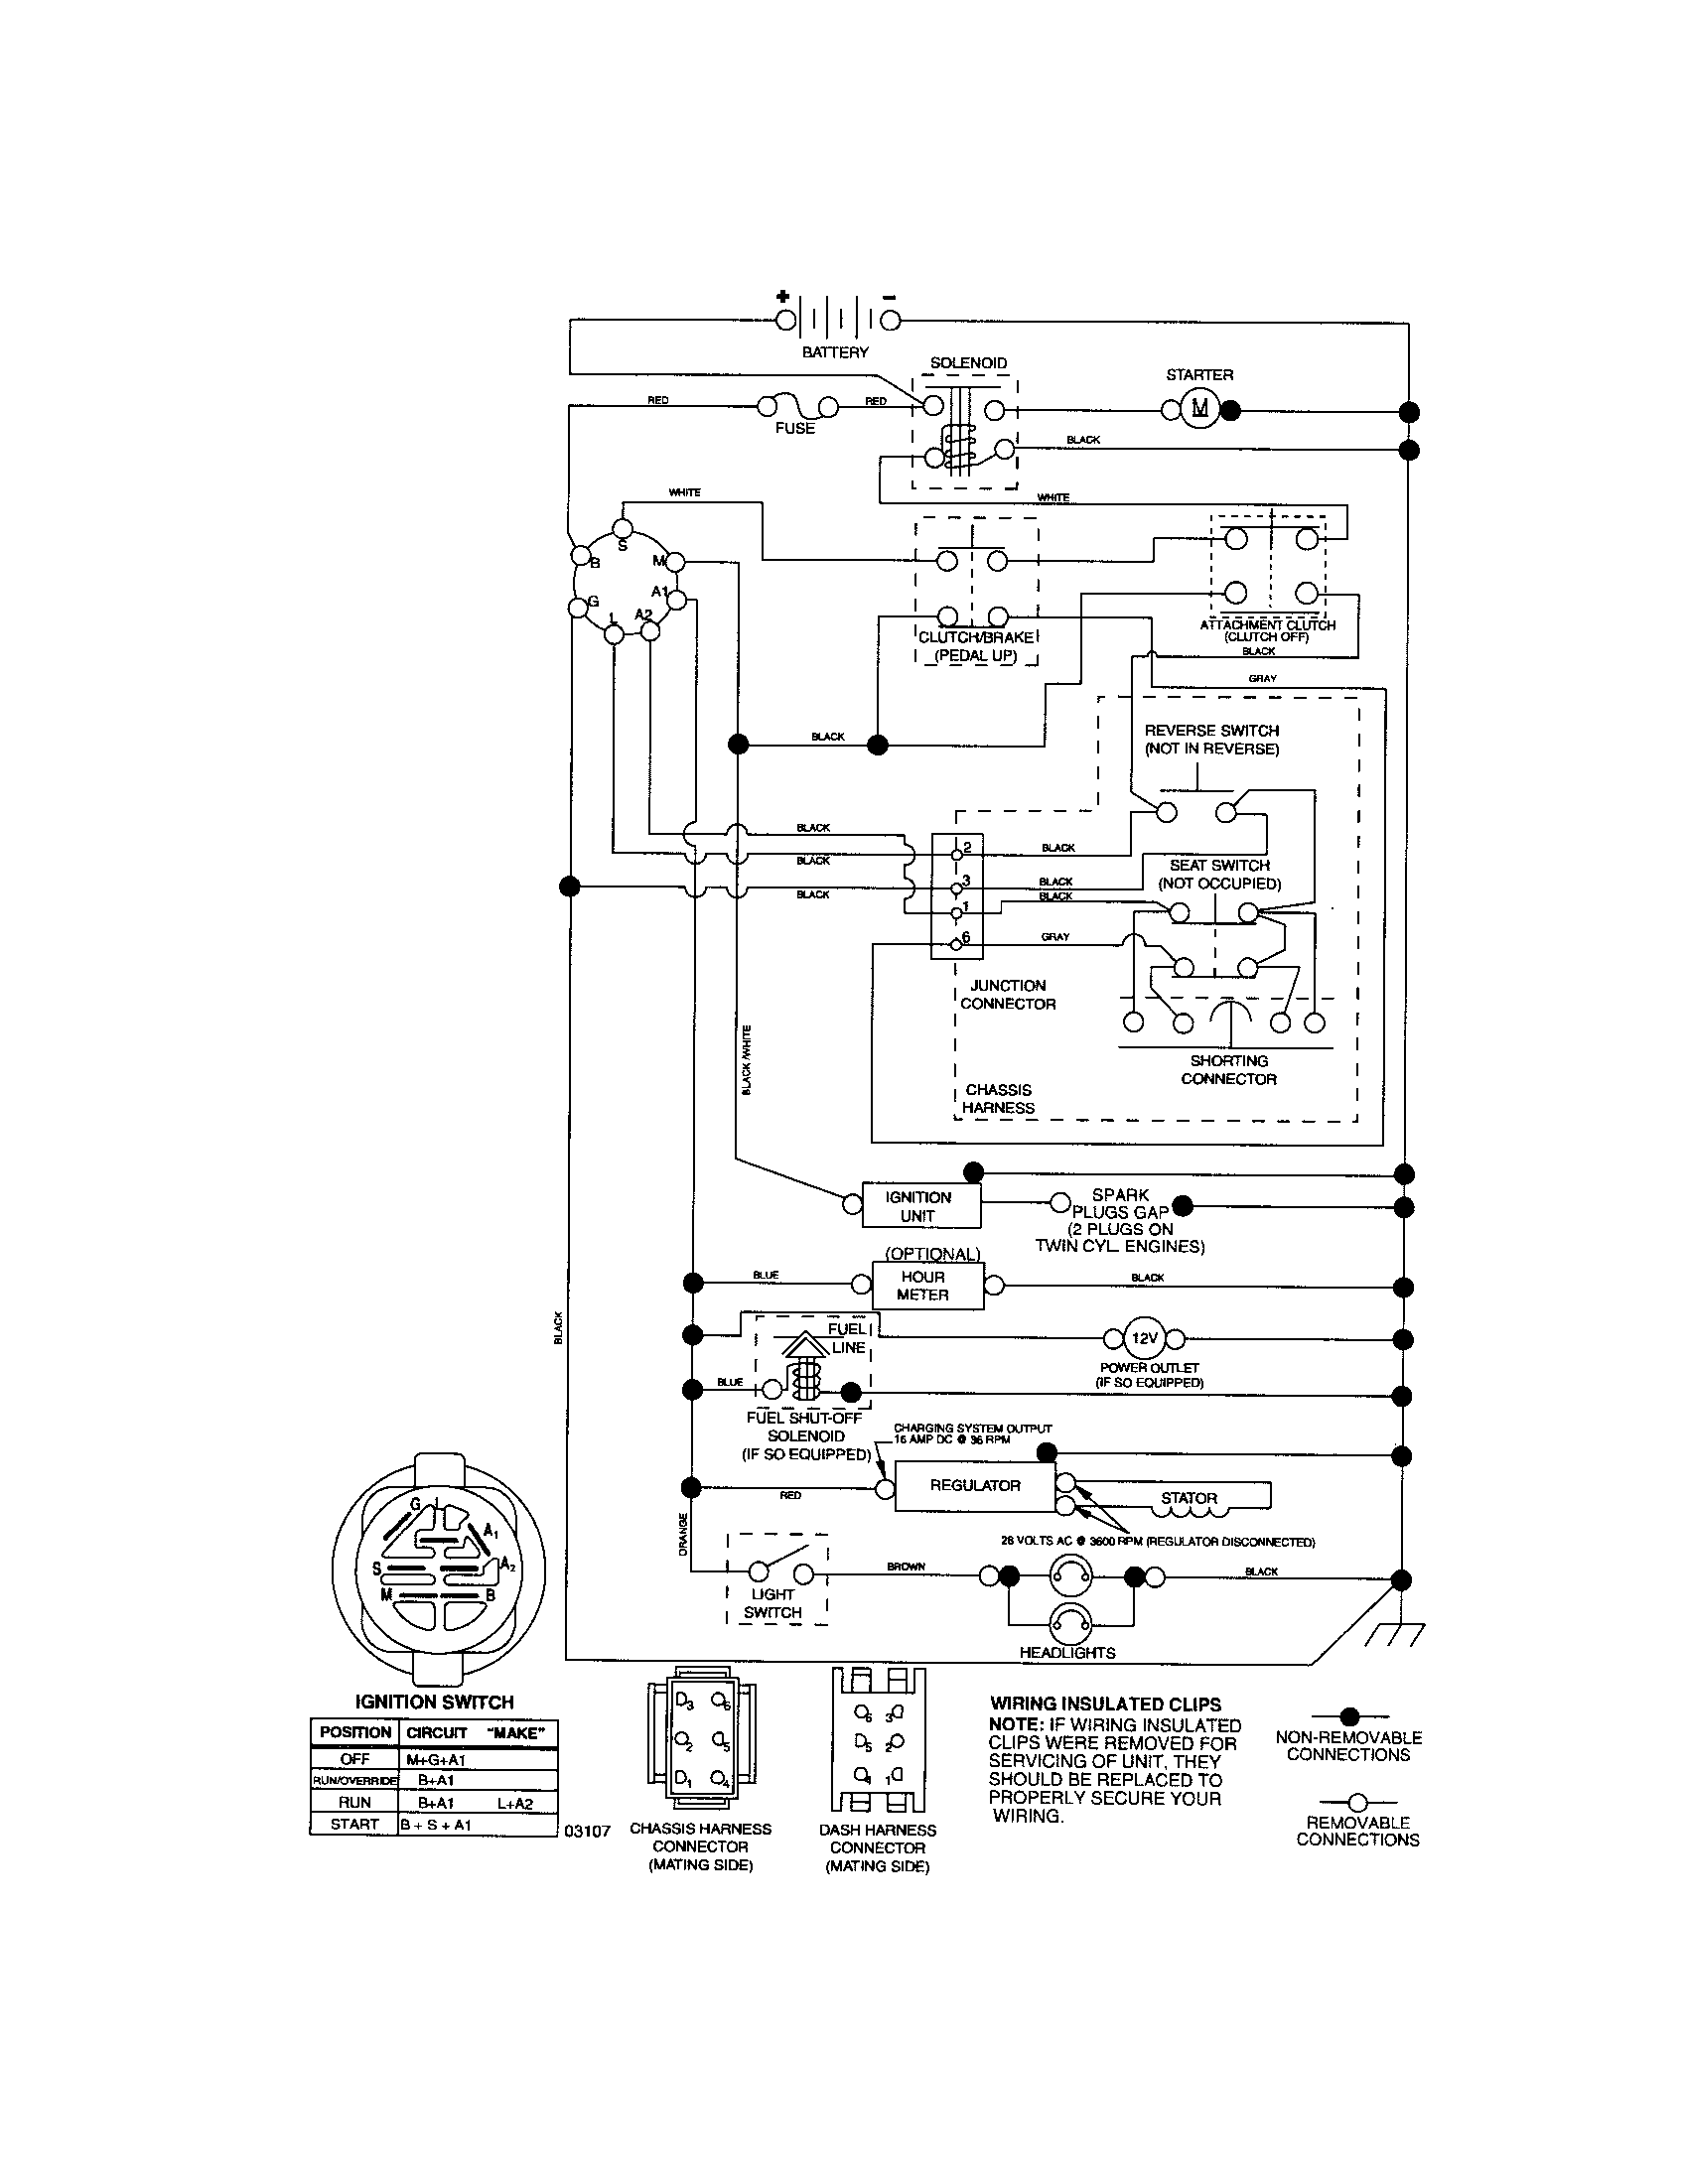 6af5f1447fd13c8443376822ddc1e105 craftsman riding mower electrical diagram wiring diagram wiring diagram for snapper riding mower at honlapkeszites.co